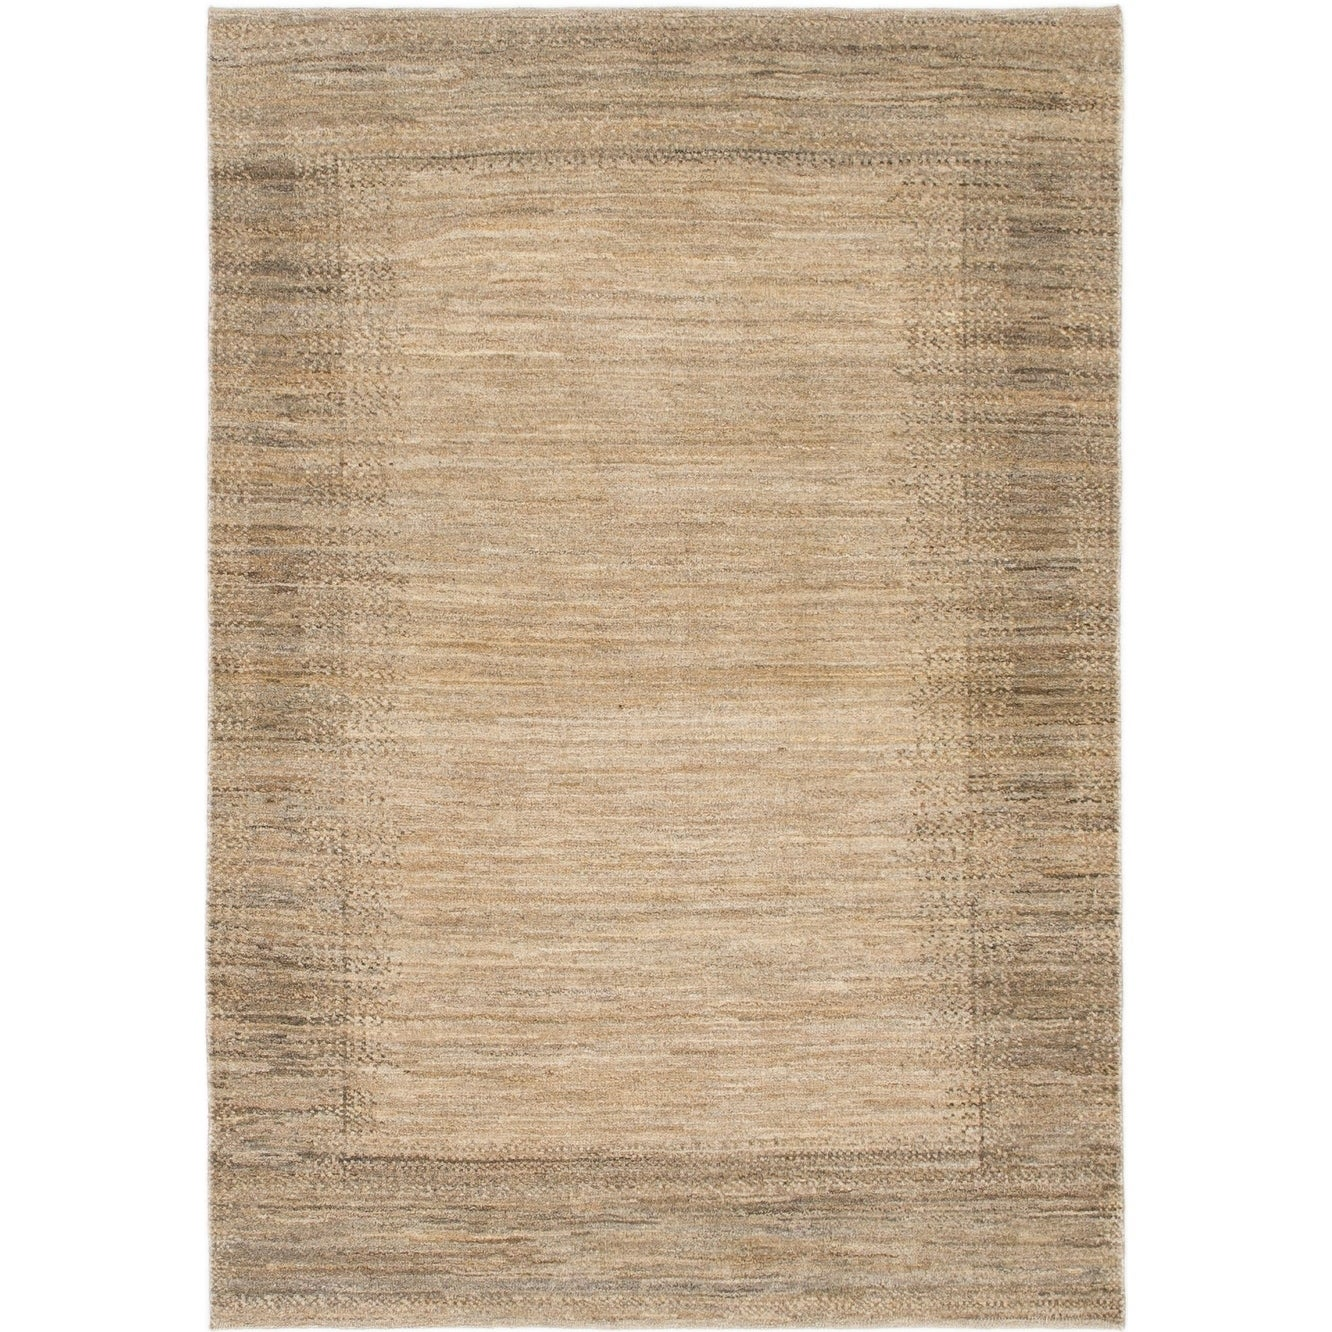 Hand Knotted Kashkuli Gabbeh Wool Area Rug - 4 x 5 8 (Taupe - 4 x 5 8)